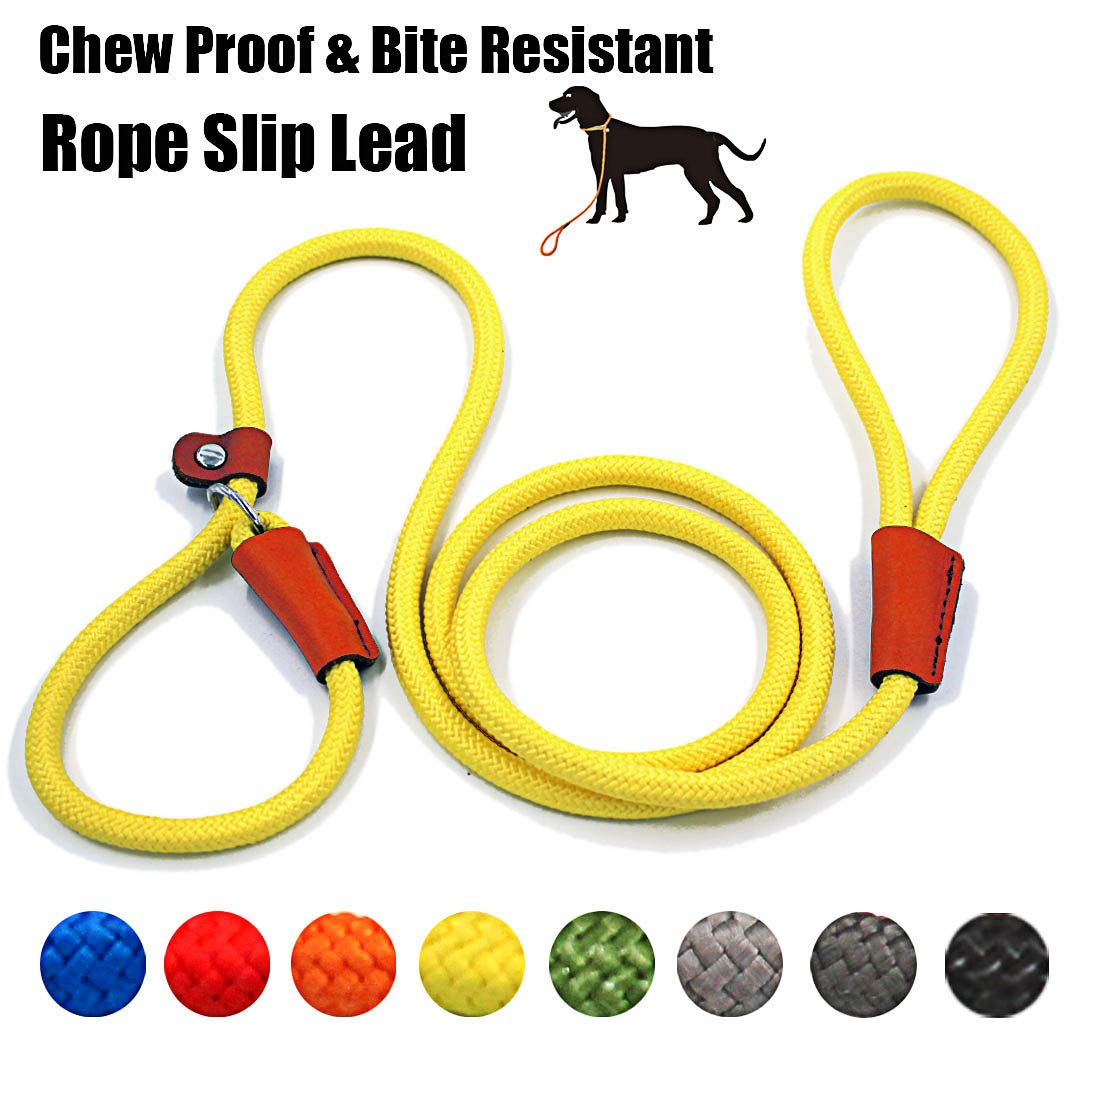 lynxking Braided Rope Dog Leash Strong Heavy Duty Bite Resistant Dog Rope Slip Leads UHMWPE Chew Resistant Training Lead Leashes Medium Large Dogs (3/8'' x5', Yellow) by lynxking